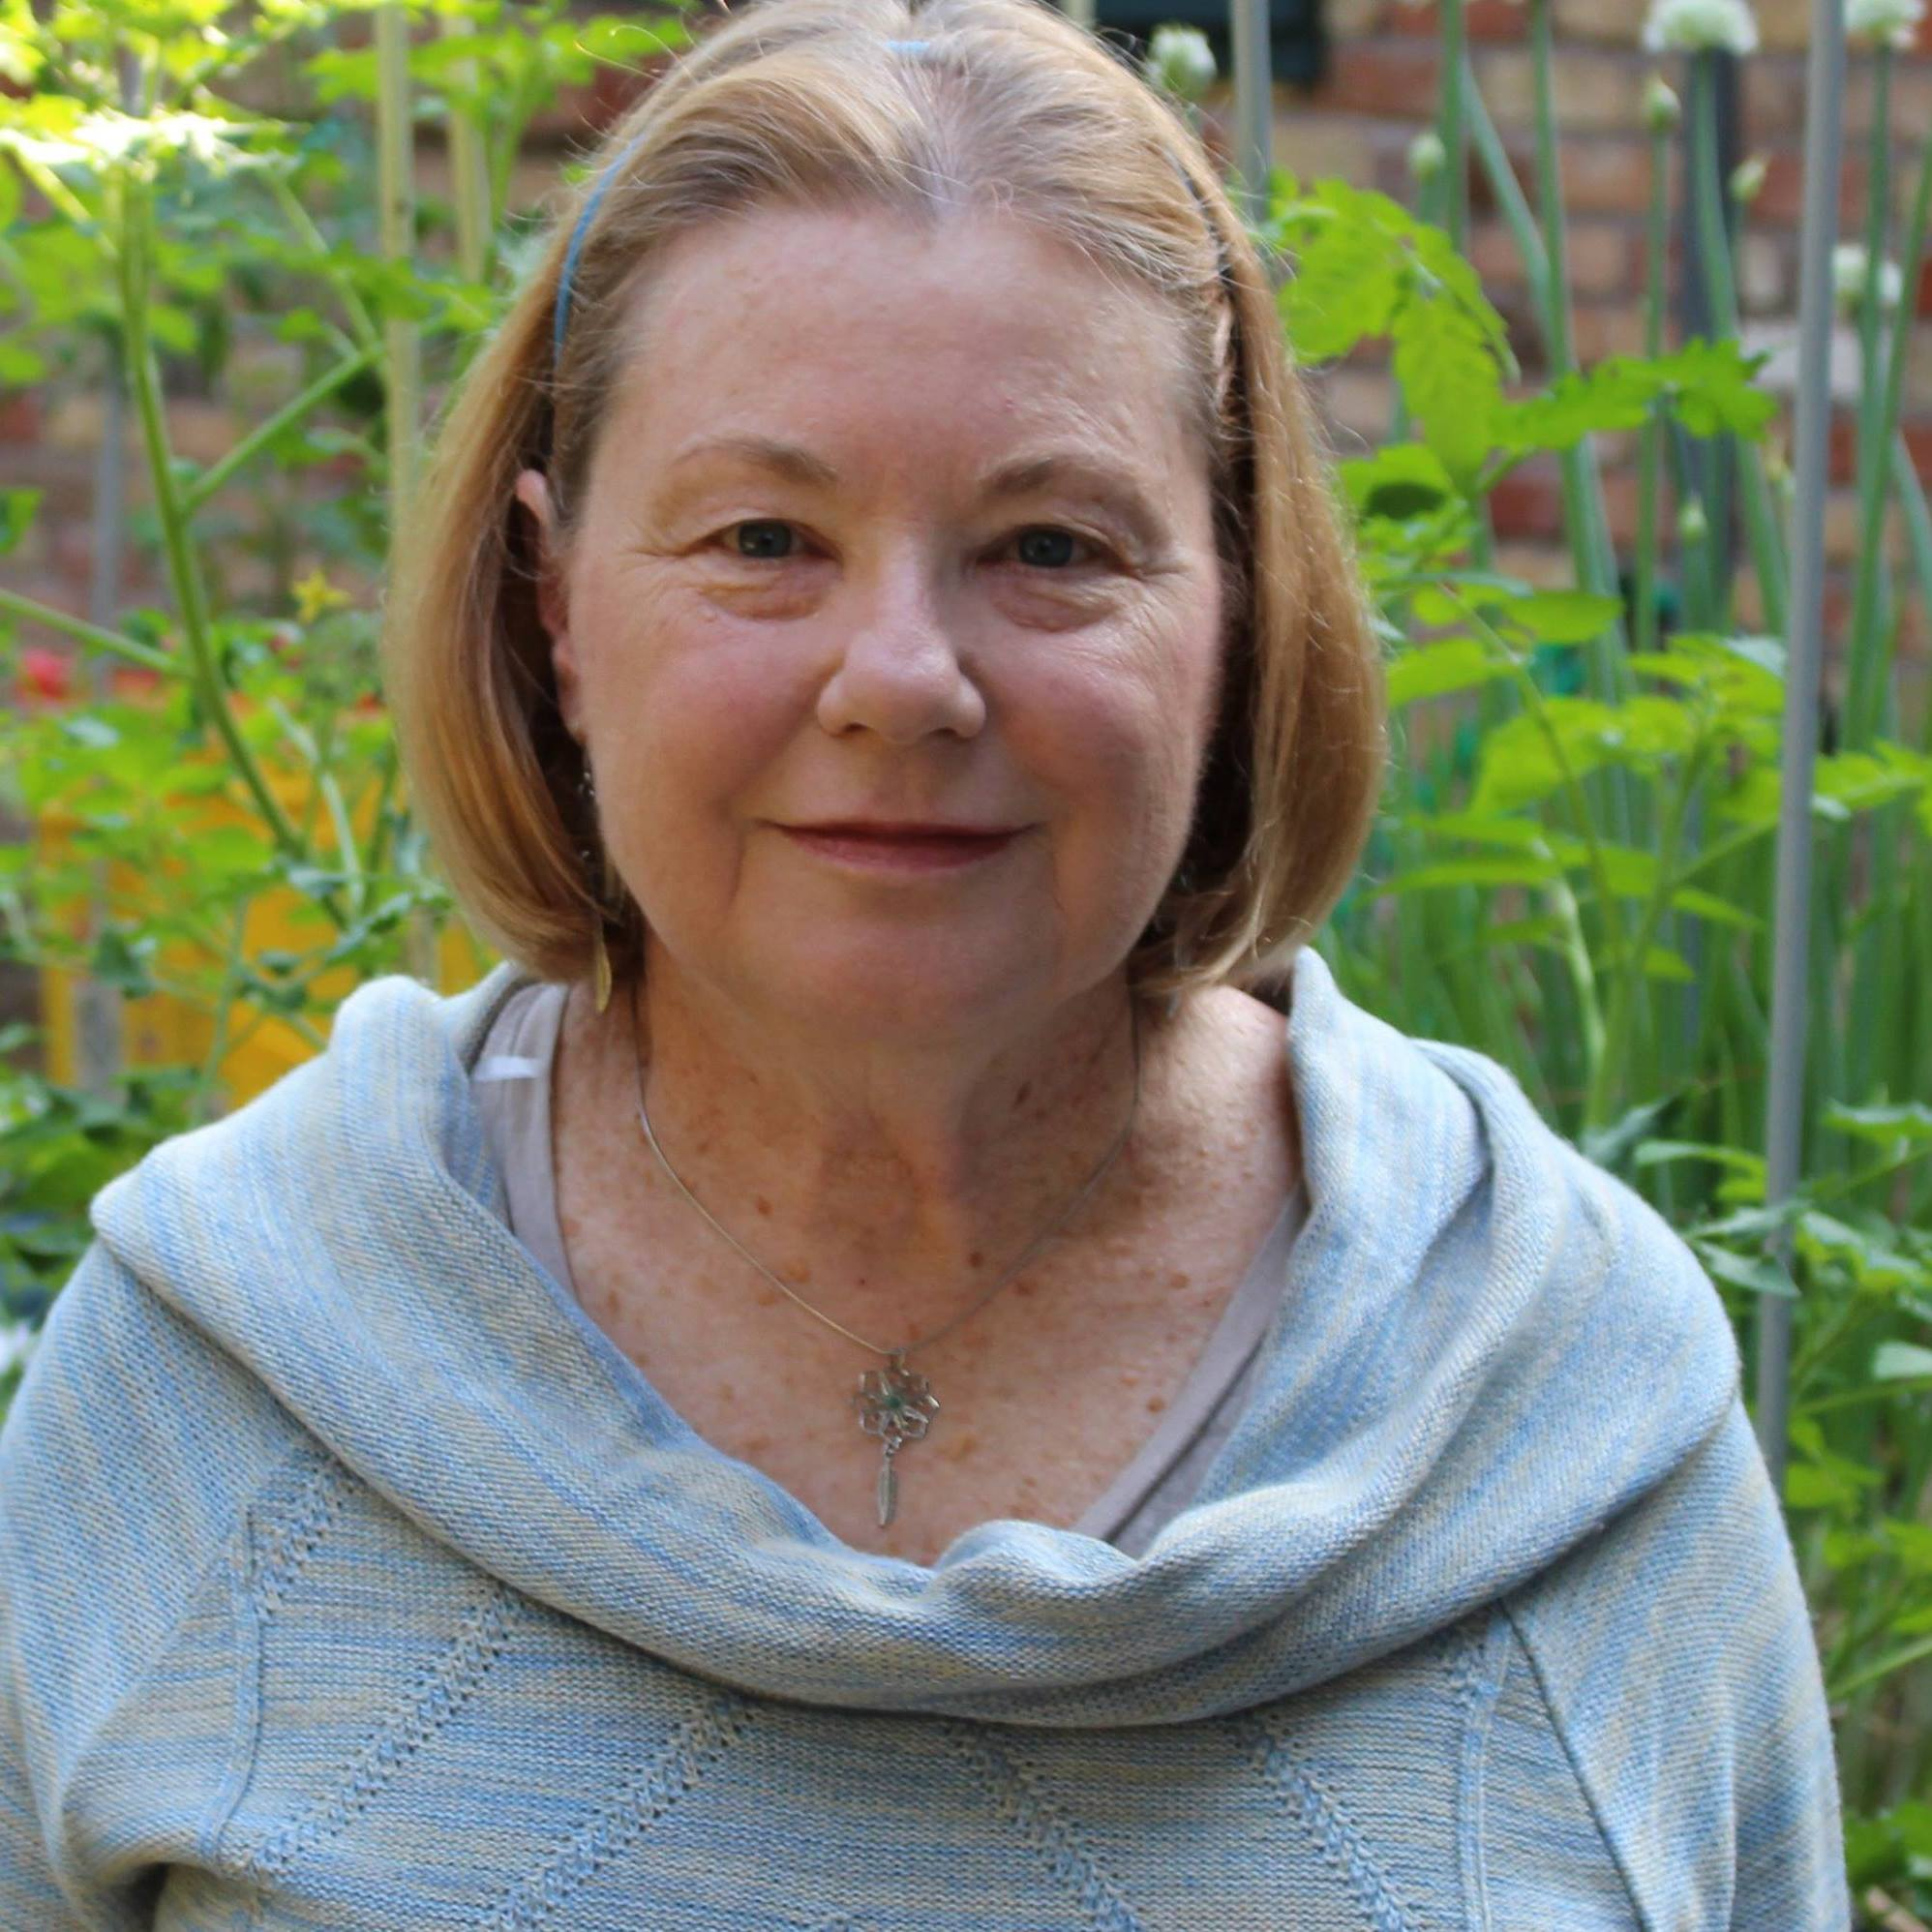 ASAN Member Profile: Marilyn Mannhard, Local Food Production Initiative